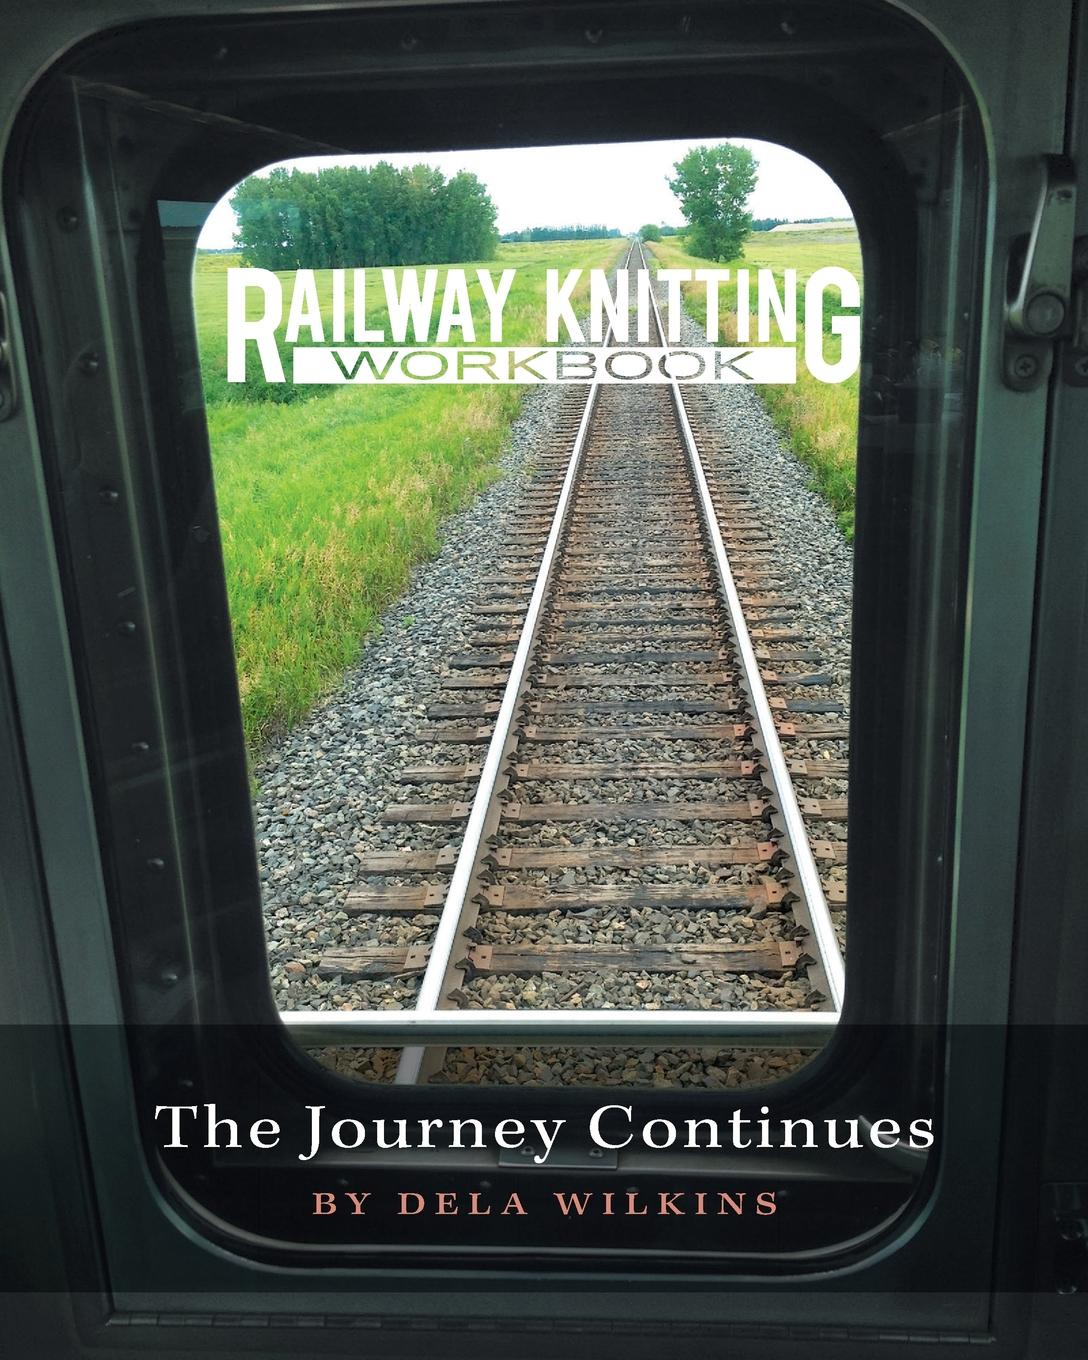 Dela Wilkins Railway Knitting Workbook. The Journey Continues super stitches knitting